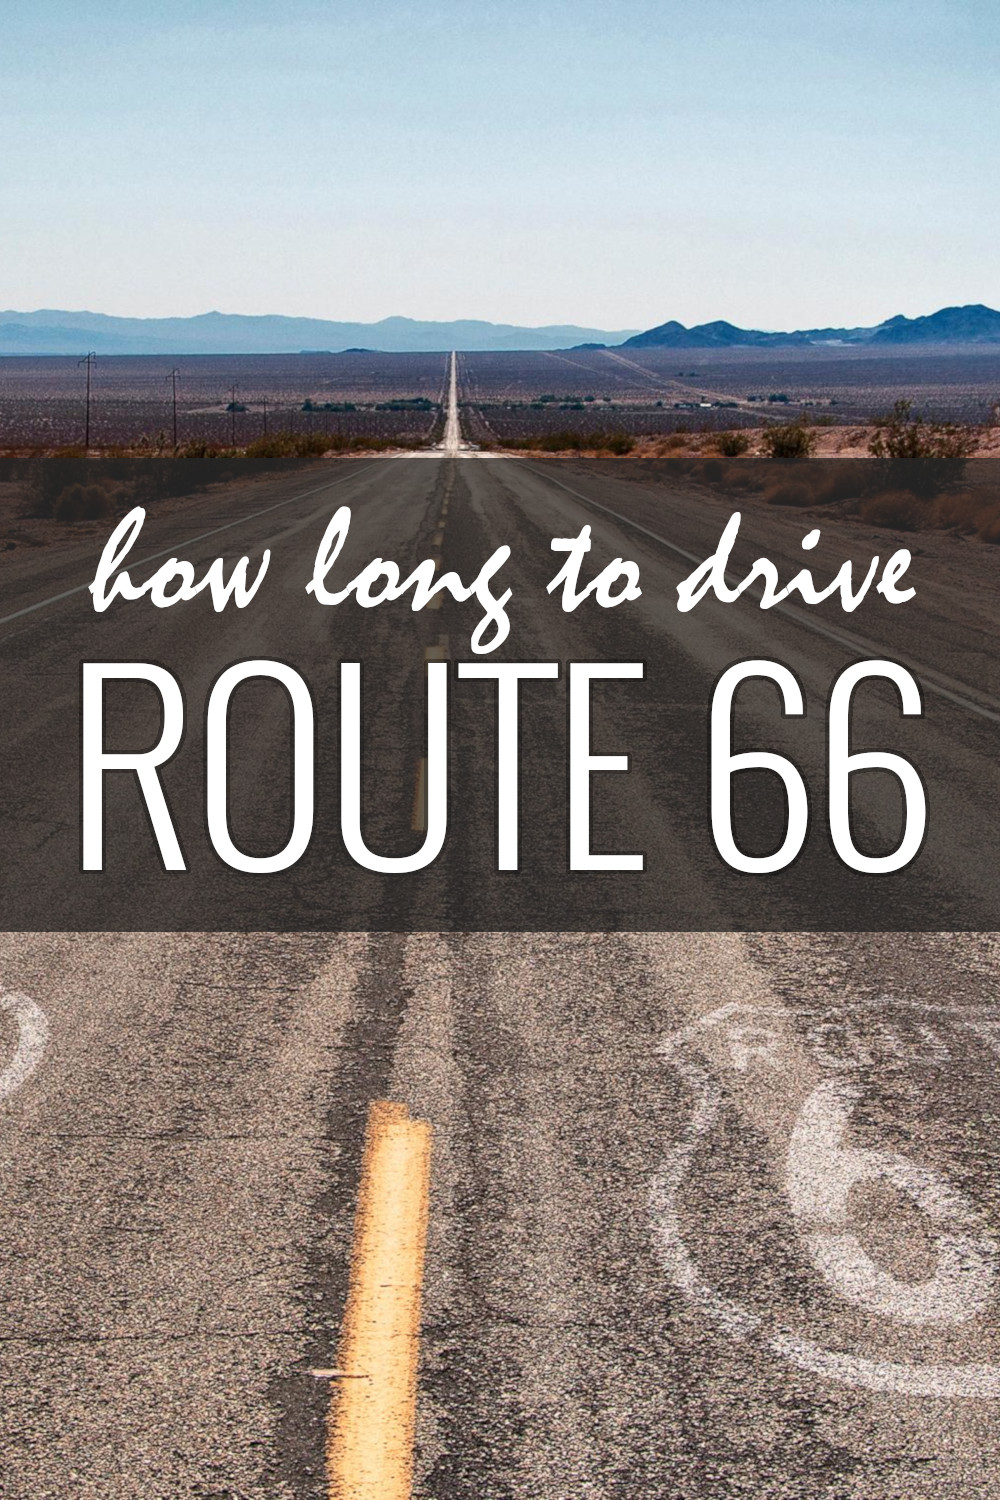 How long does it take to drive Route 66 from Chicago to Santa Monica